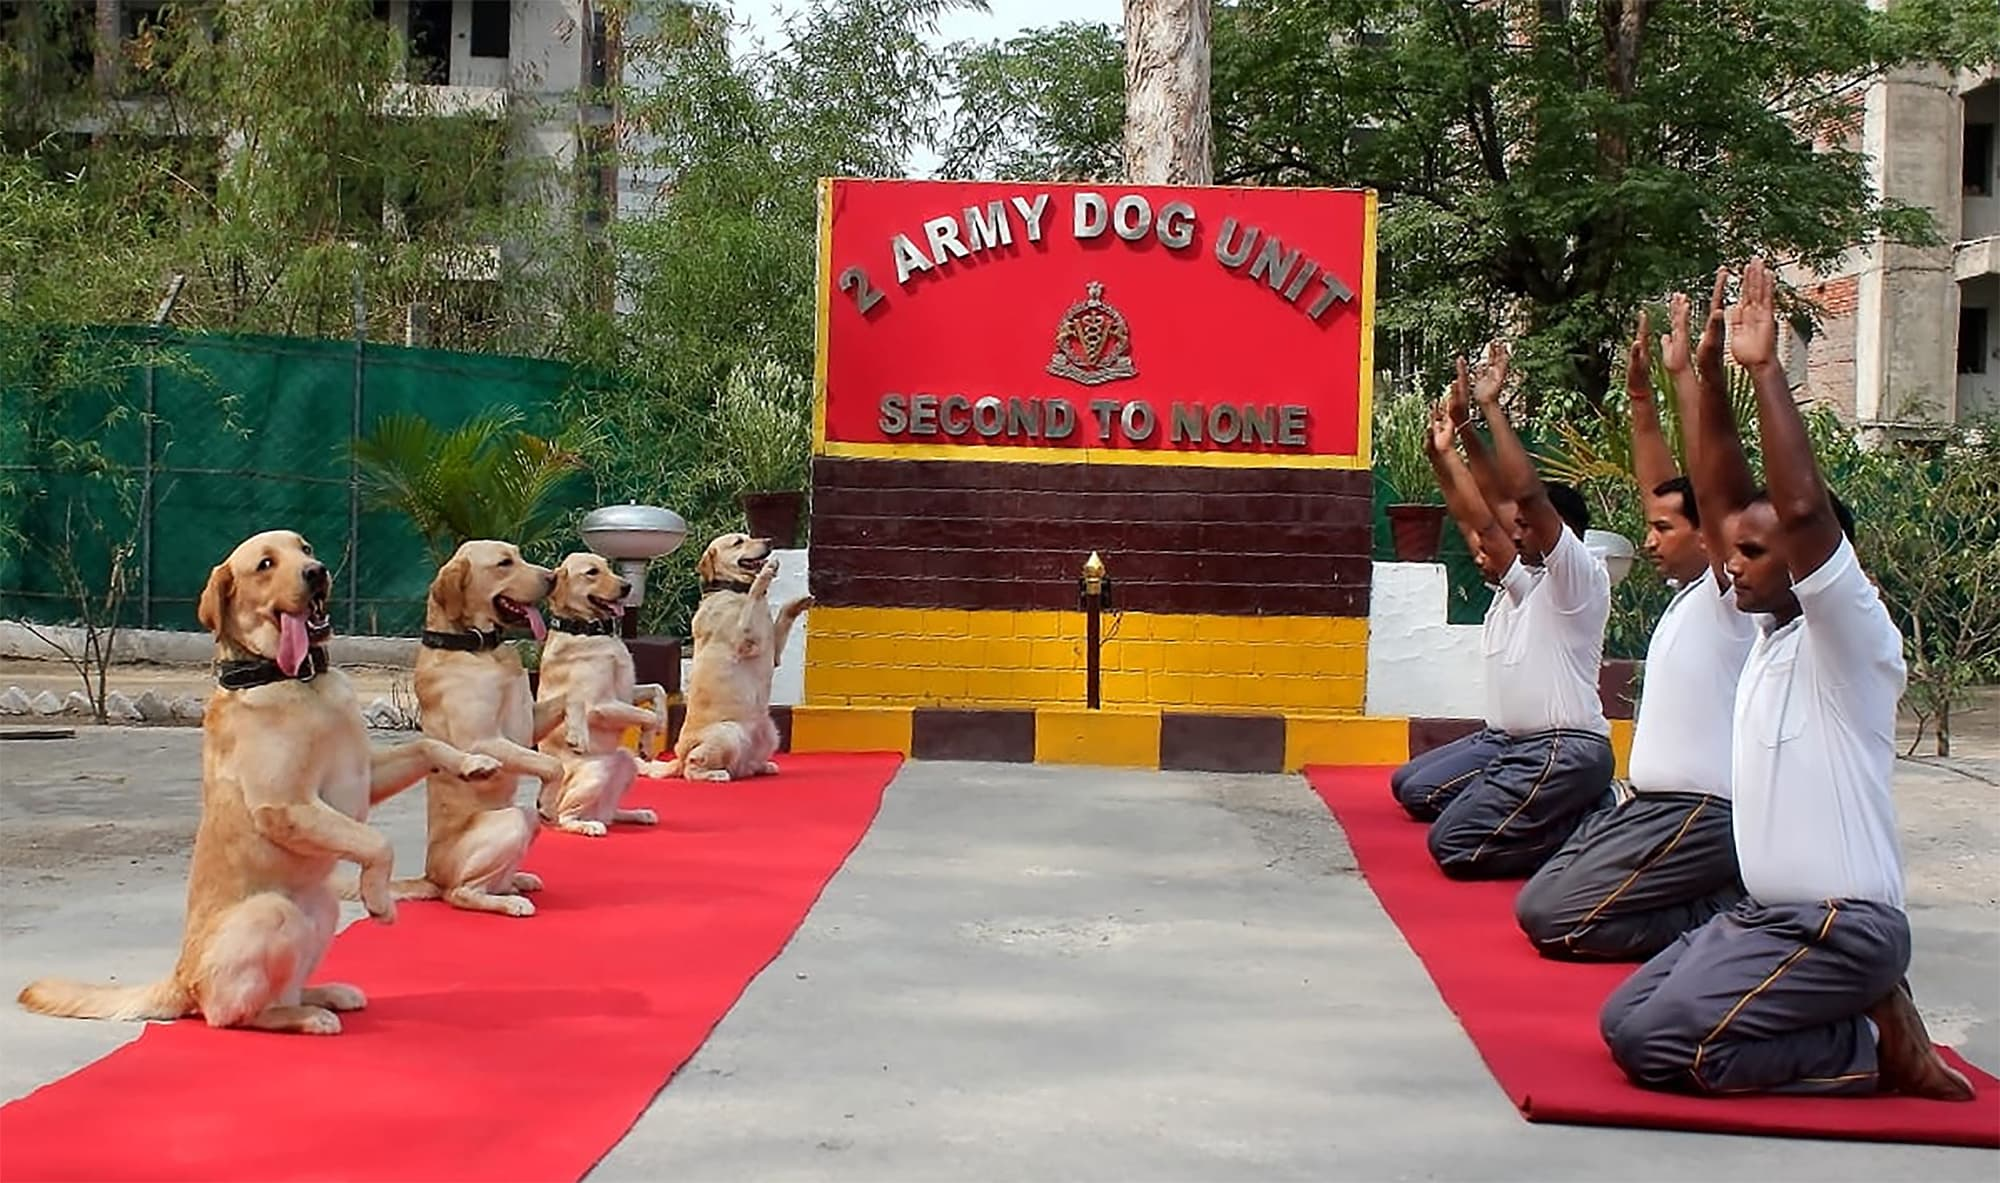 This handout photo released by the Indian Ministry of Defence and taken on June 21 shows an Indian Army Dog Unit doing yoga poses as part of an event for International Yoga Day in Jalandhar in north India's Punjab state. — AFP